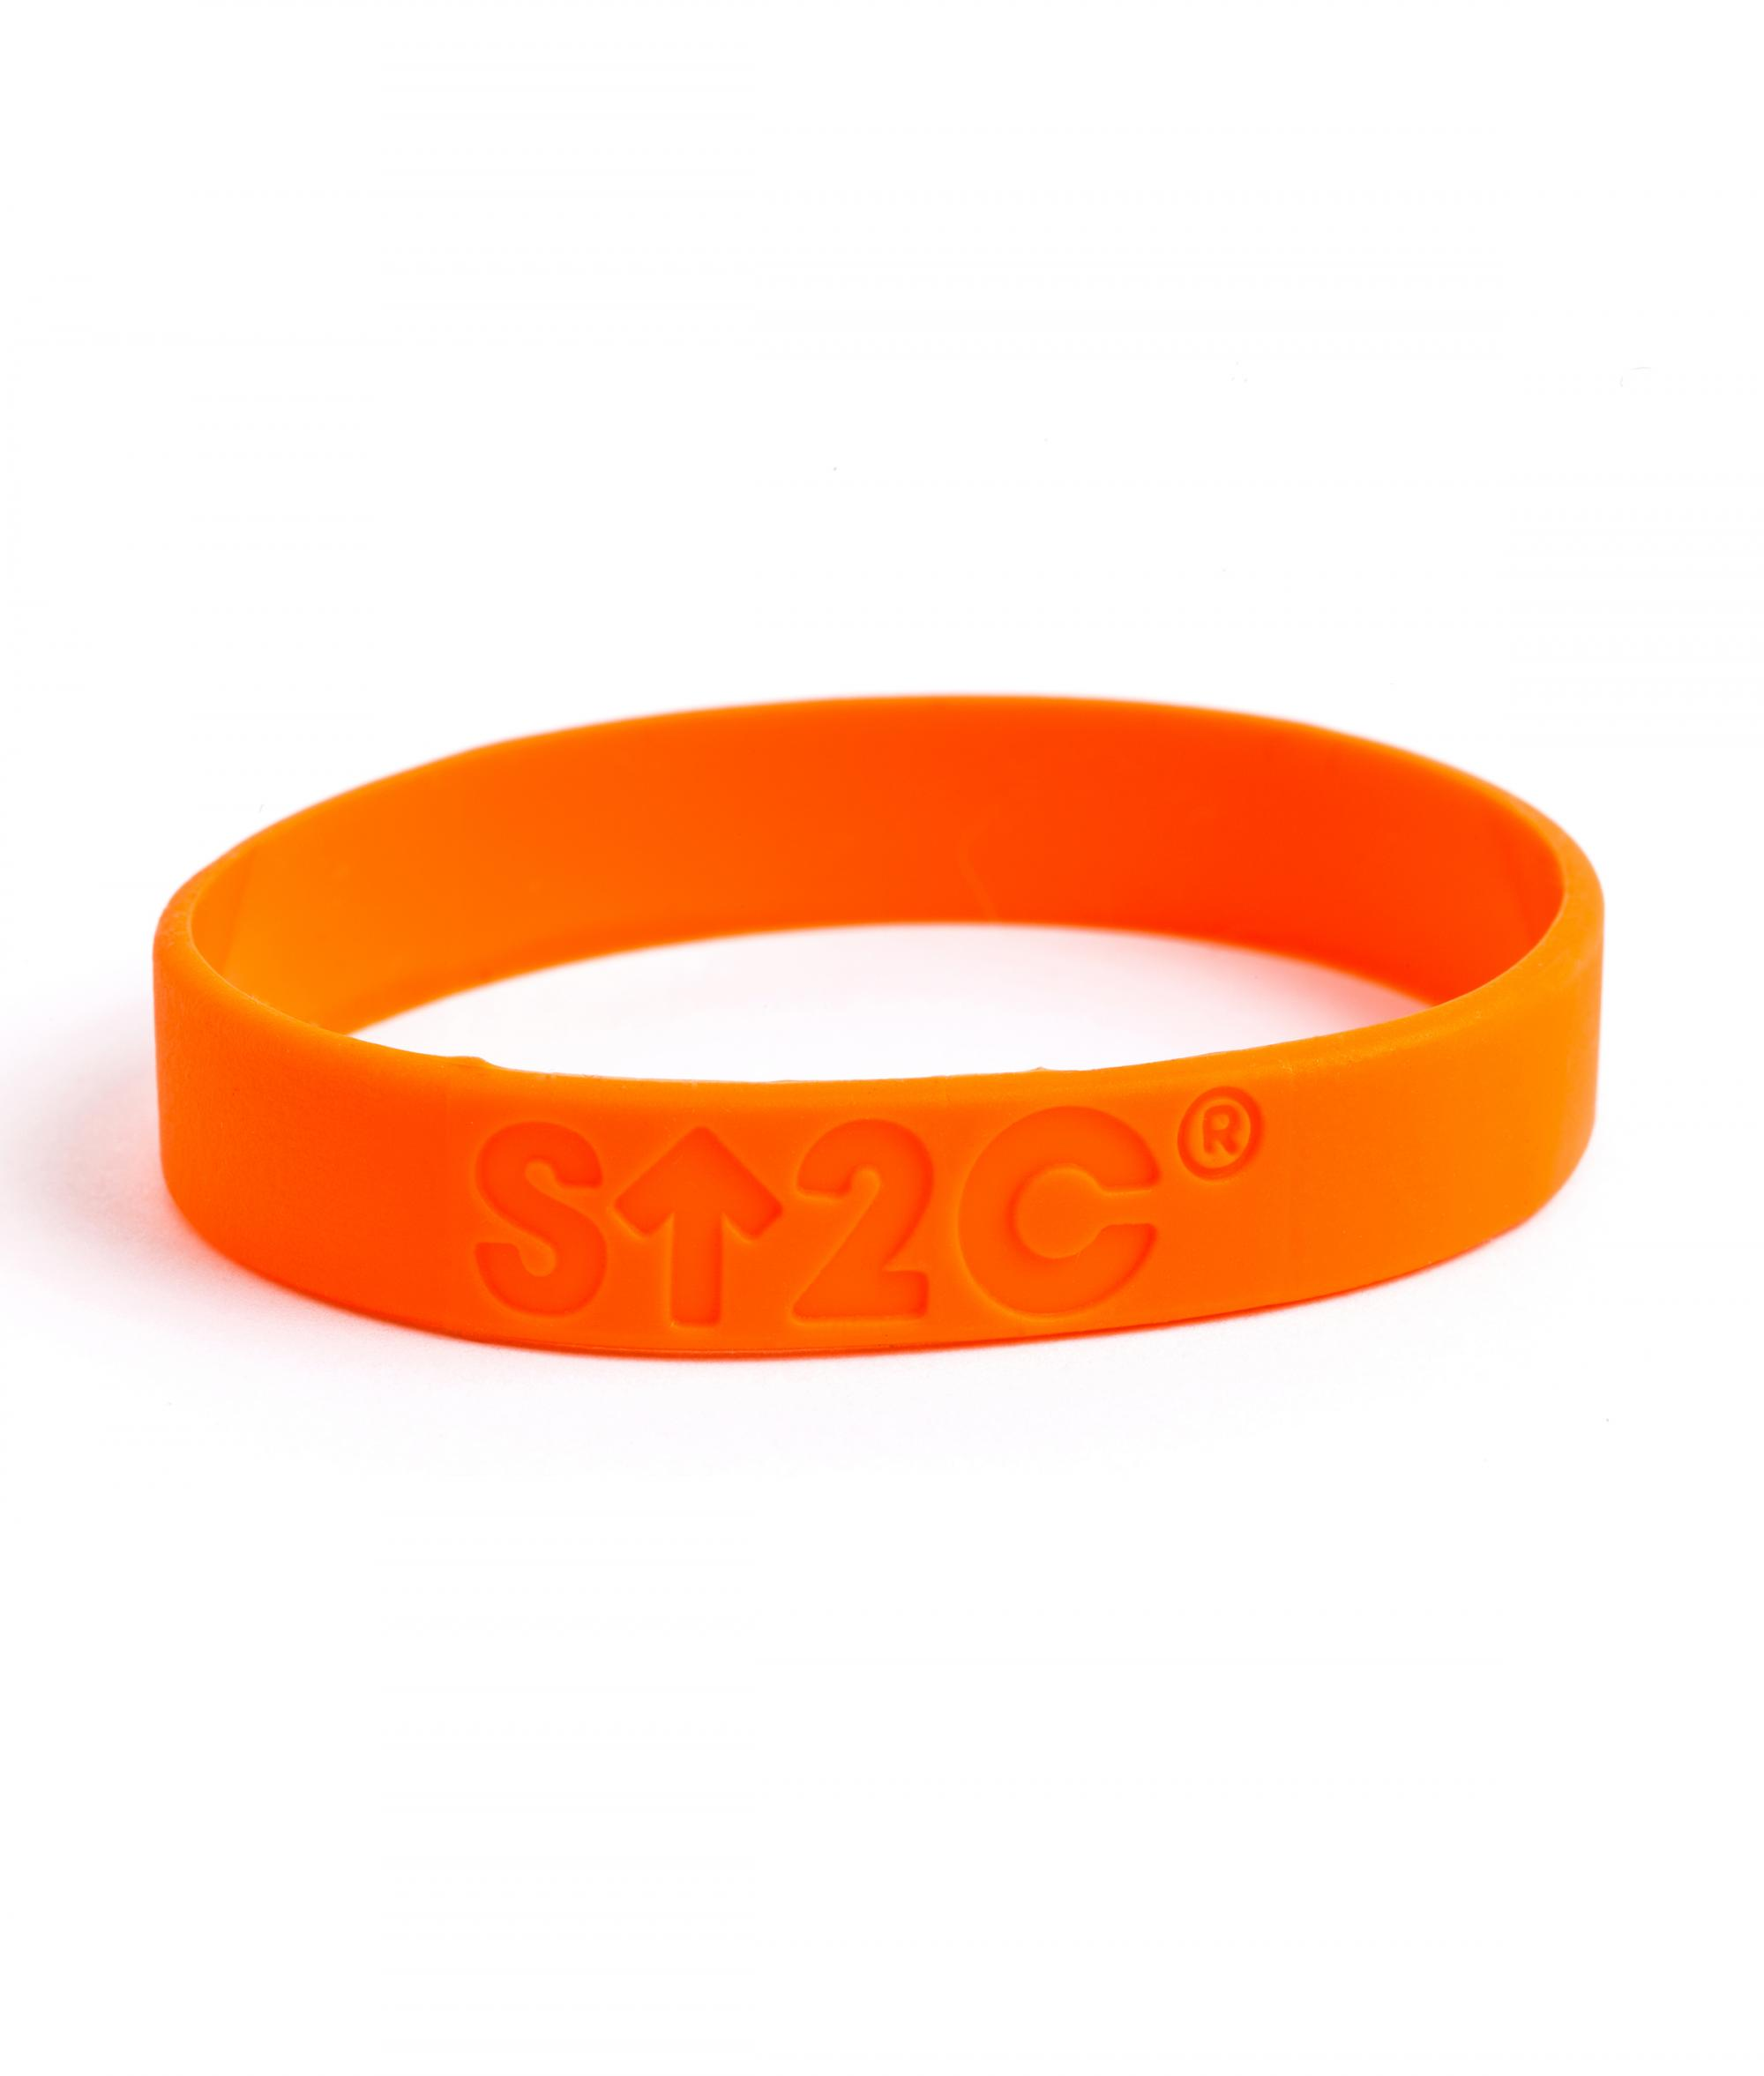 img bracelet wristband race cancer uk research shop life wrist for band product